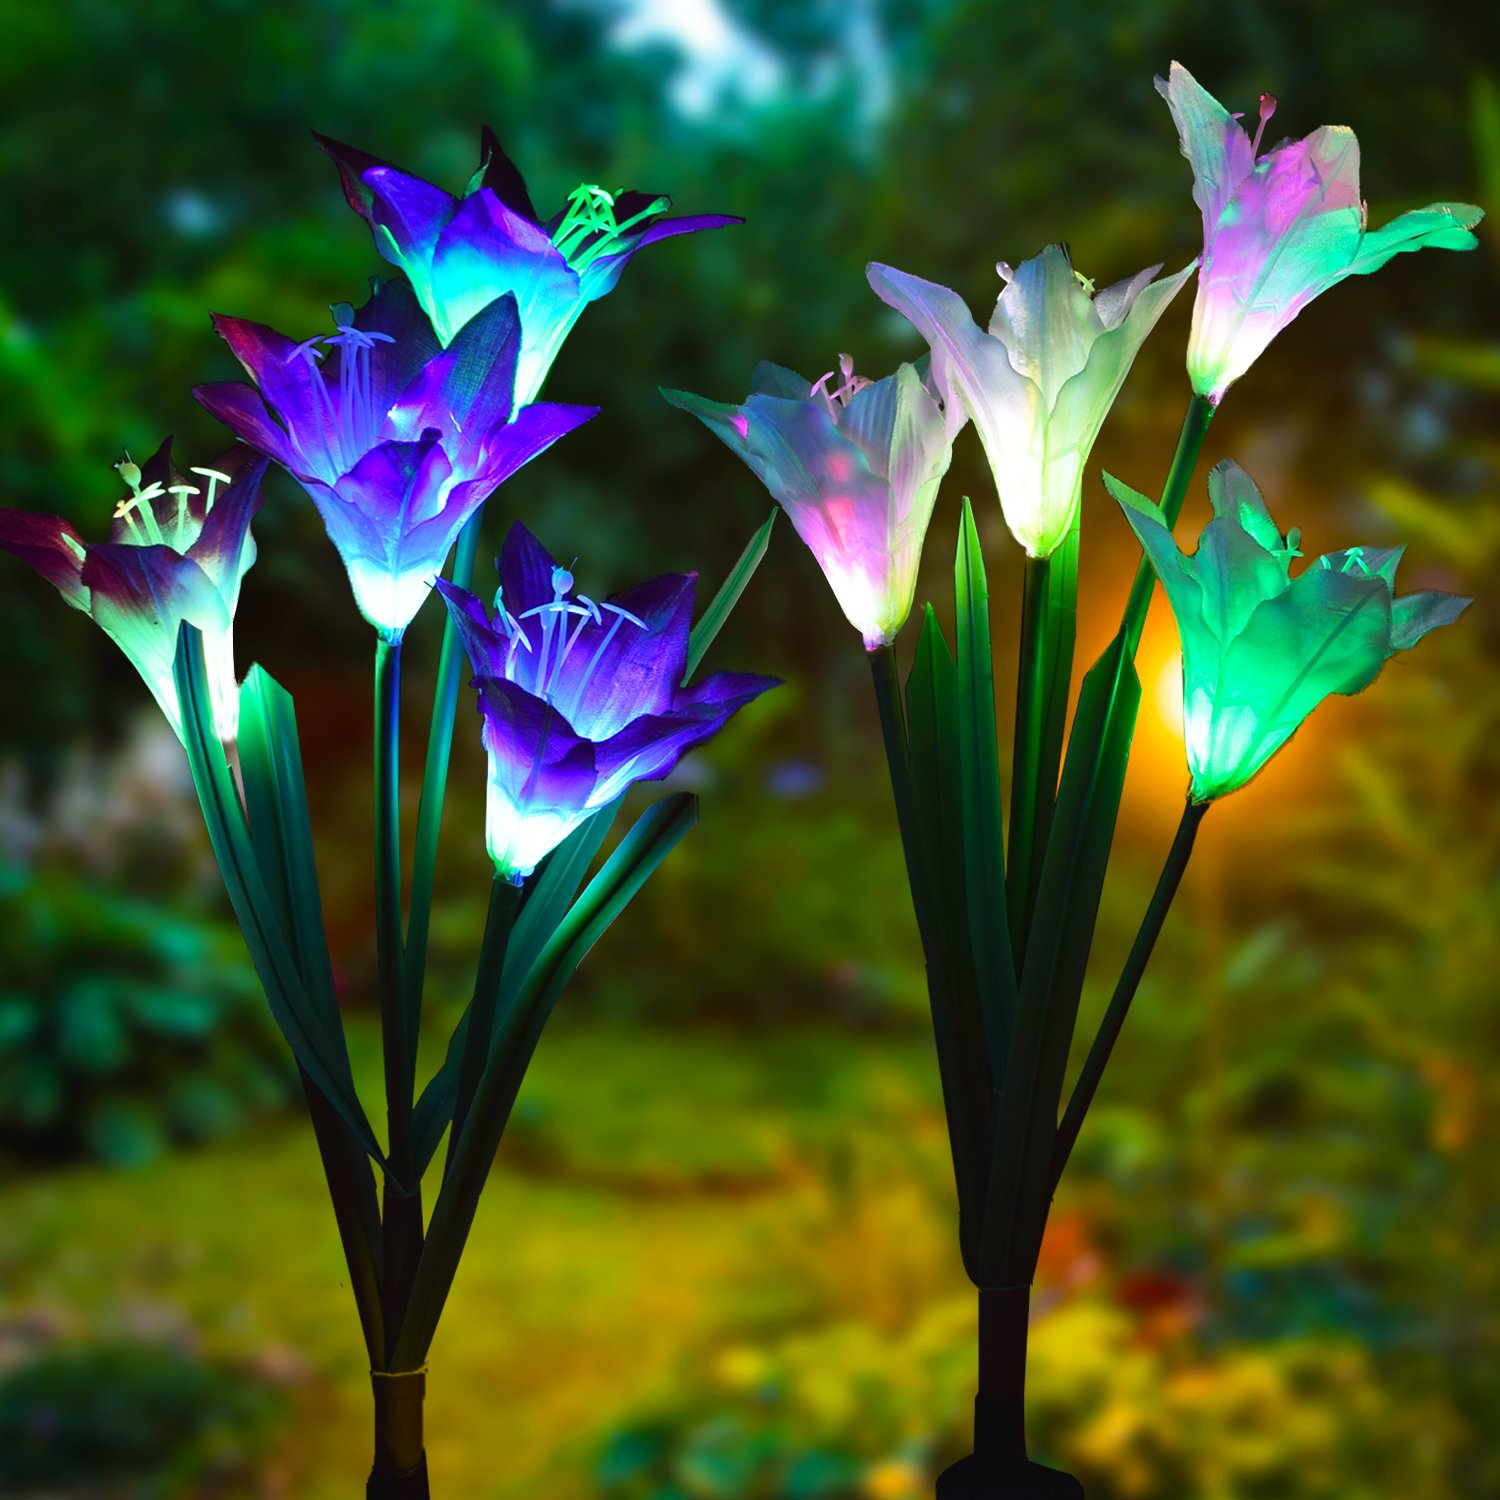 Doing Art Powered Solar Lights with Lily Flowers